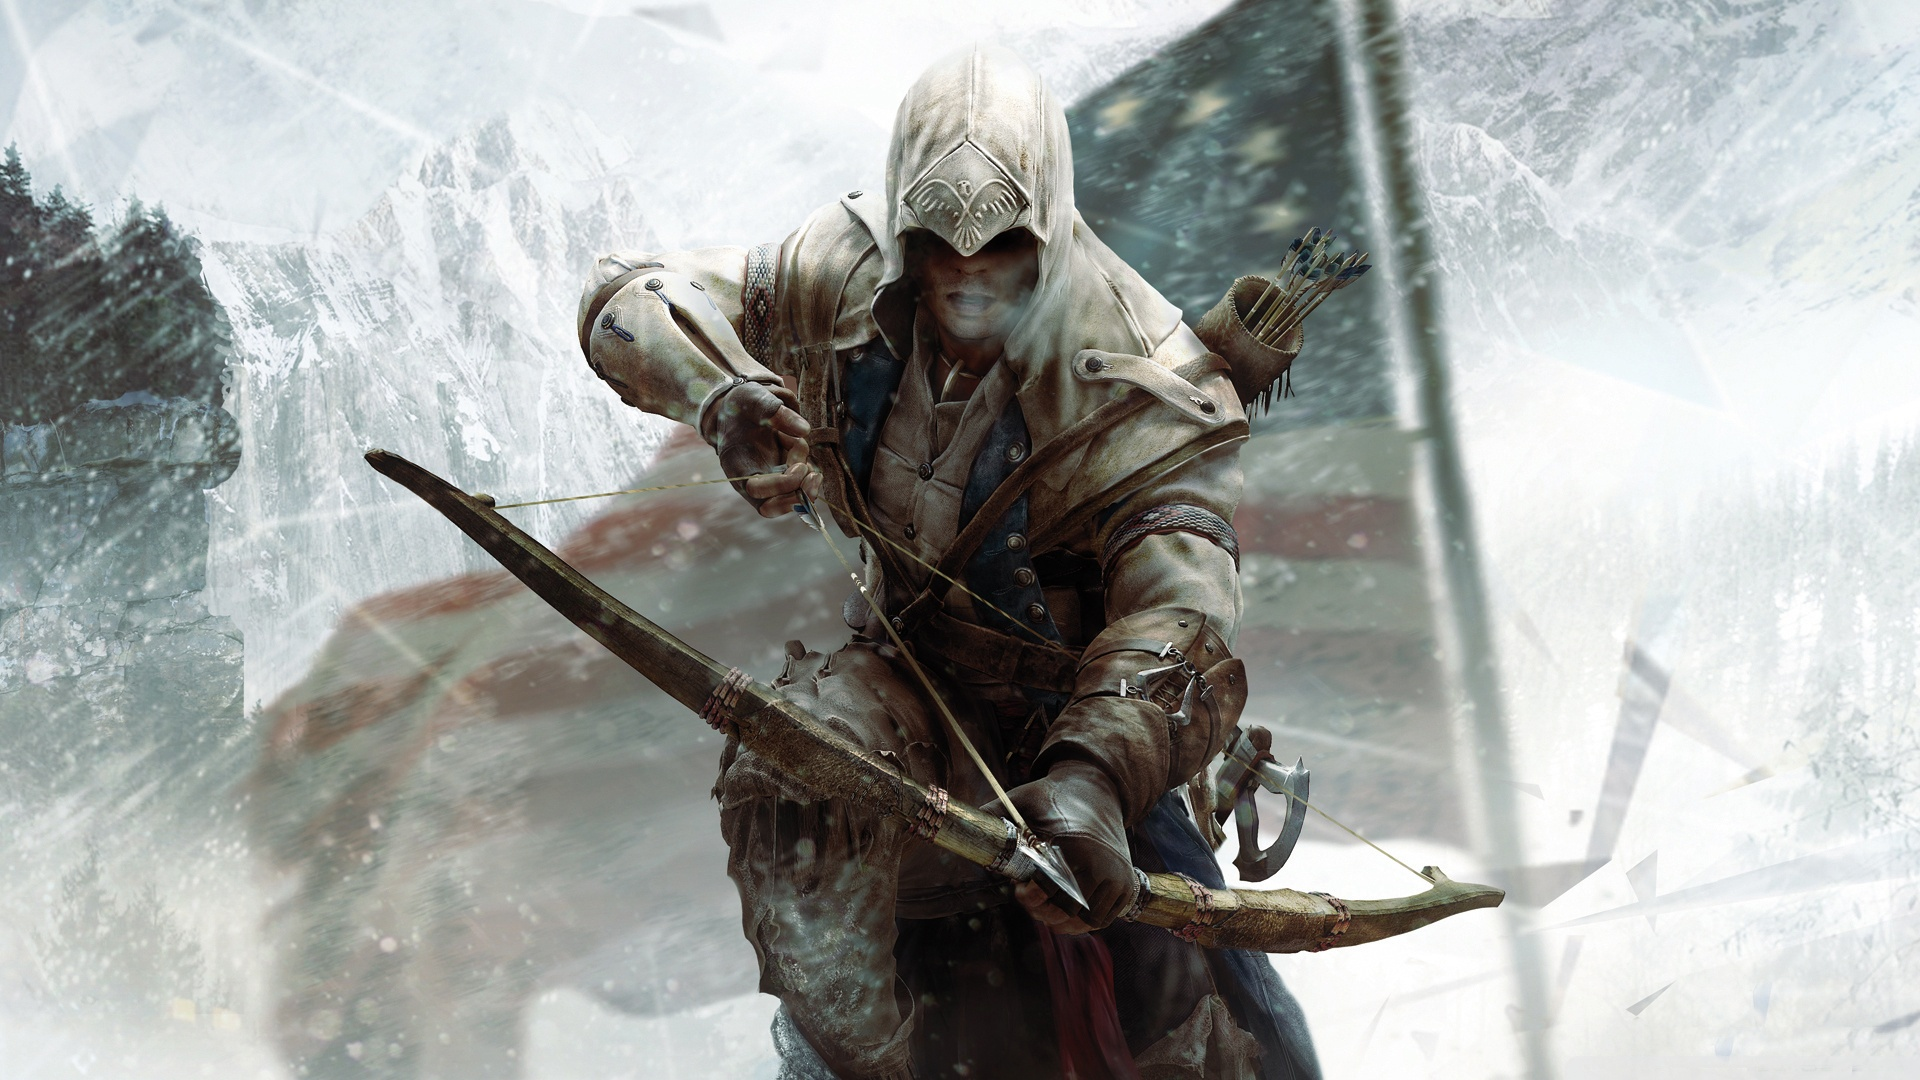 assassins_creed_3_connor_bow-wallpaper-1920x1080.jpg